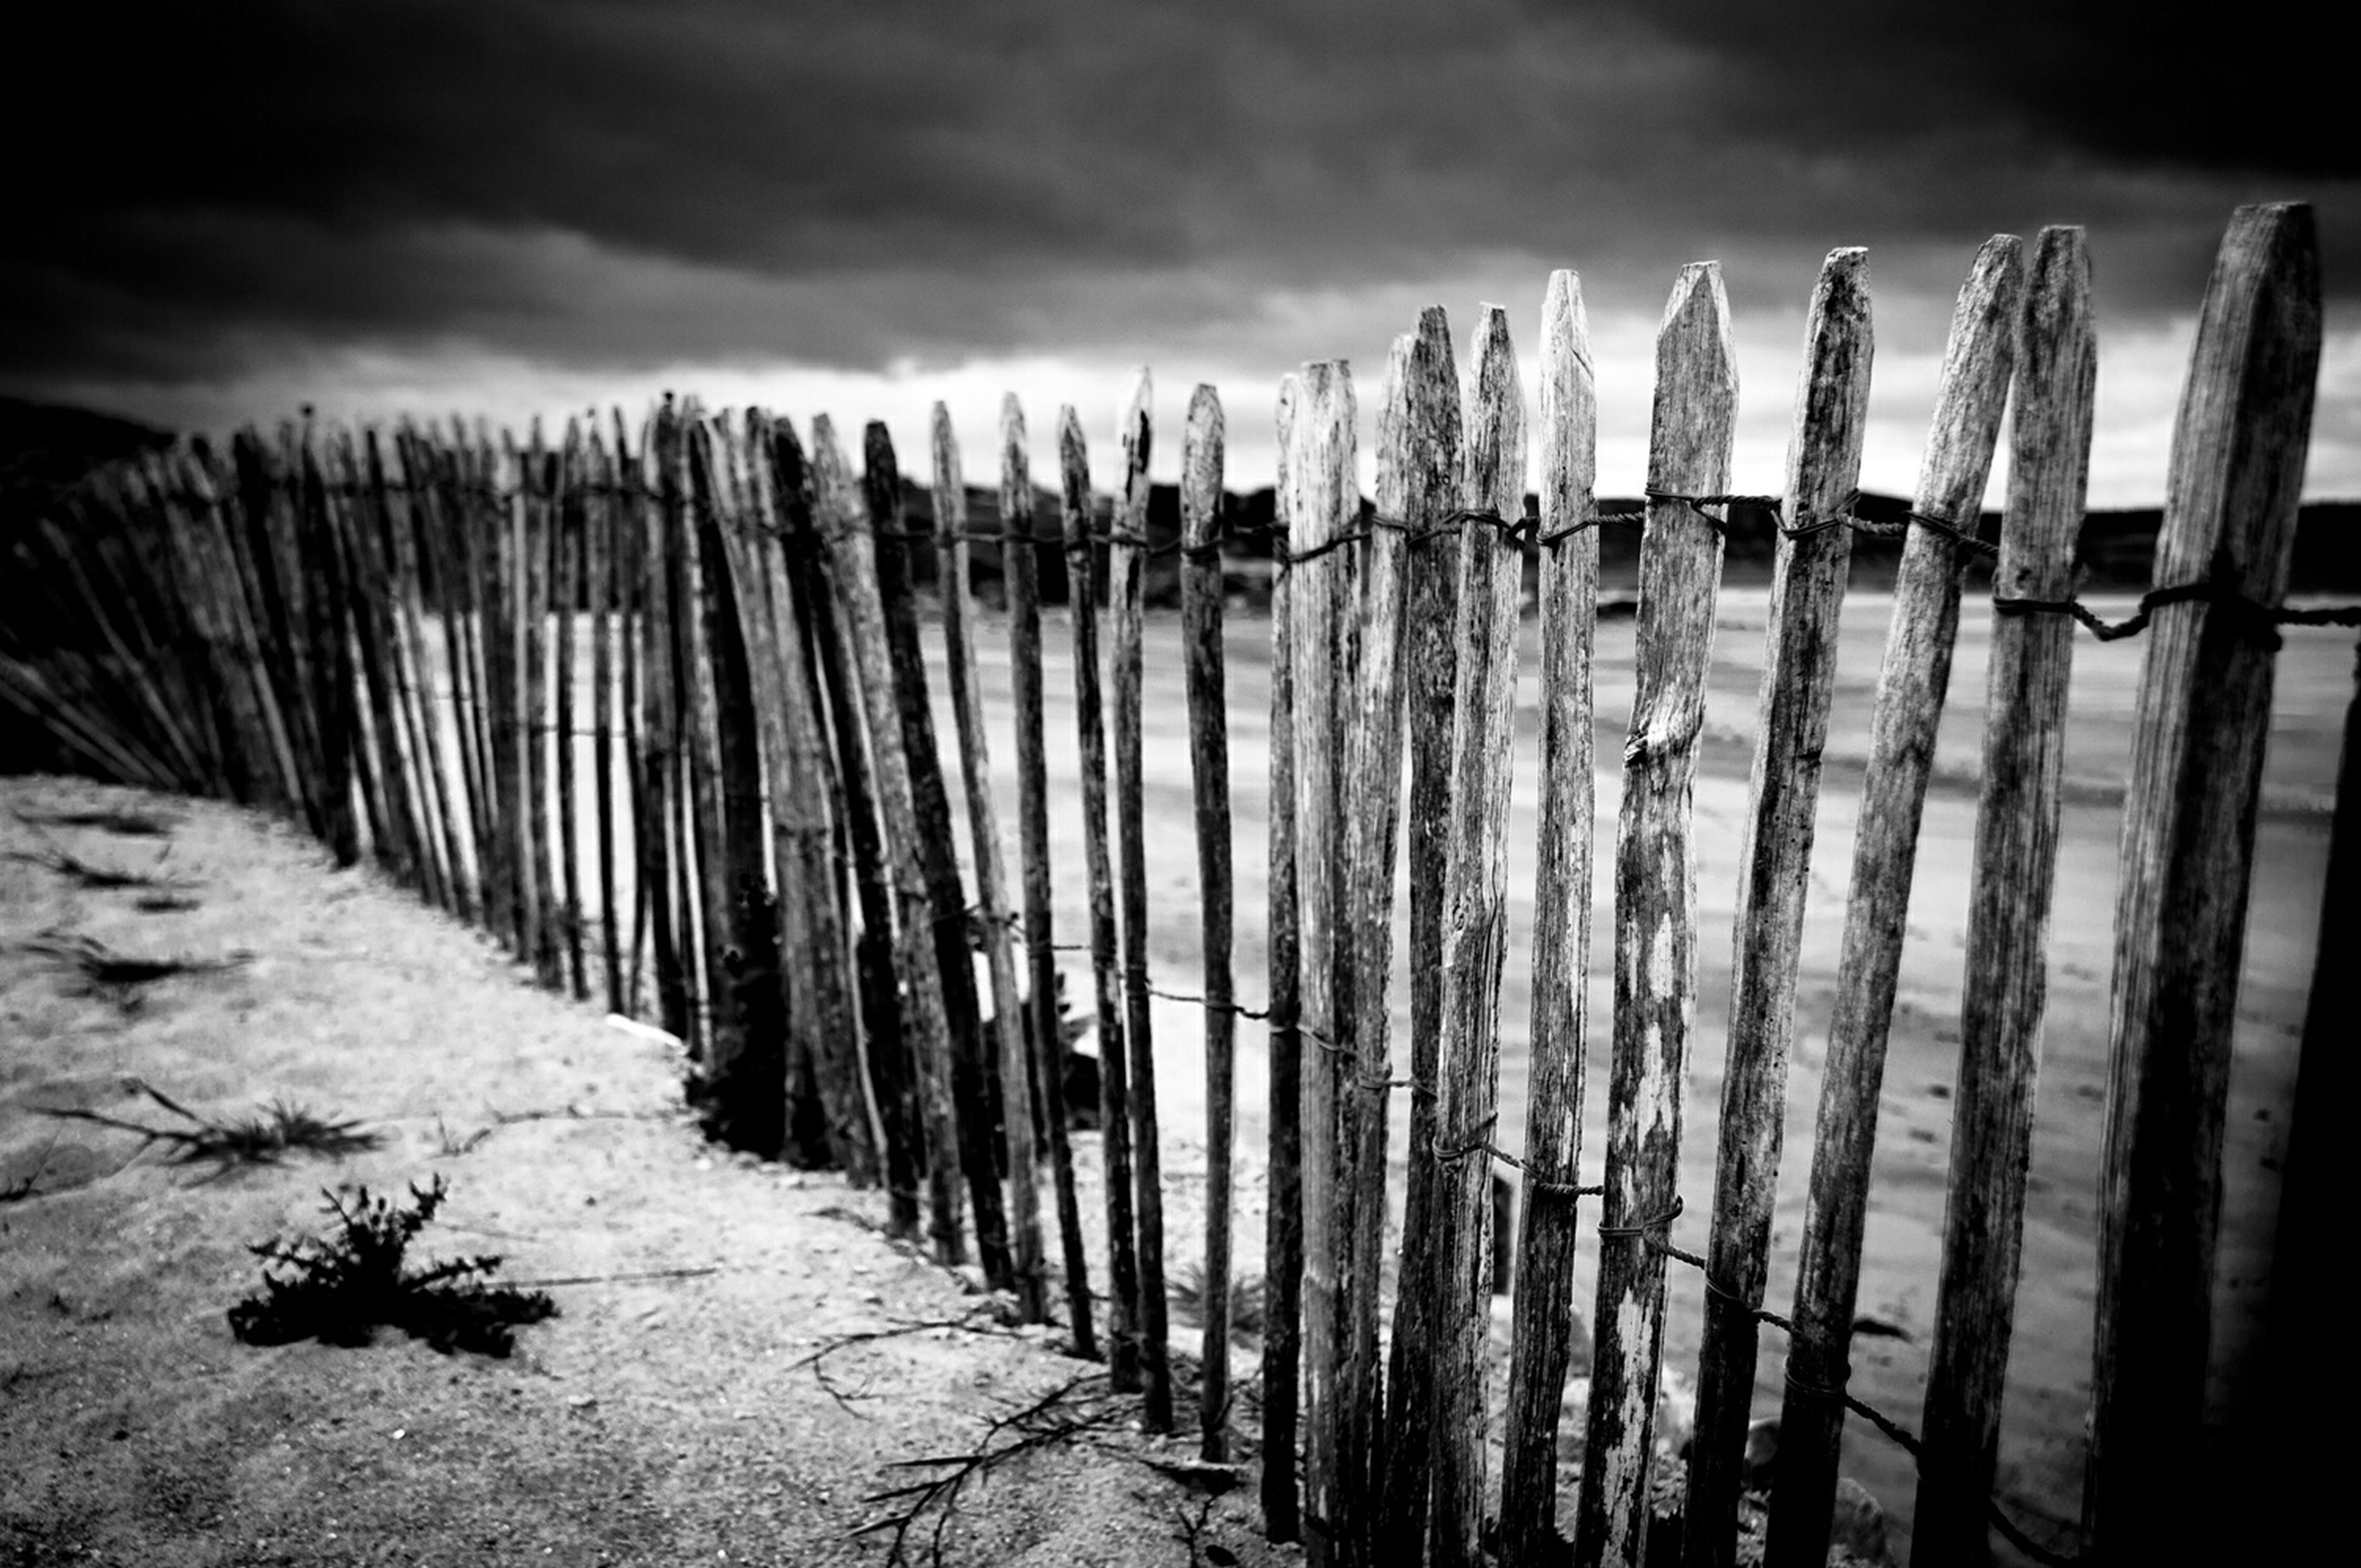 sky, fence, in a row, cloud - sky, wood - material, built structure, protection, architecture, cloudy, safety, the way forward, day, no people, outdoors, security, old, wooden, plant, wooden post, nature